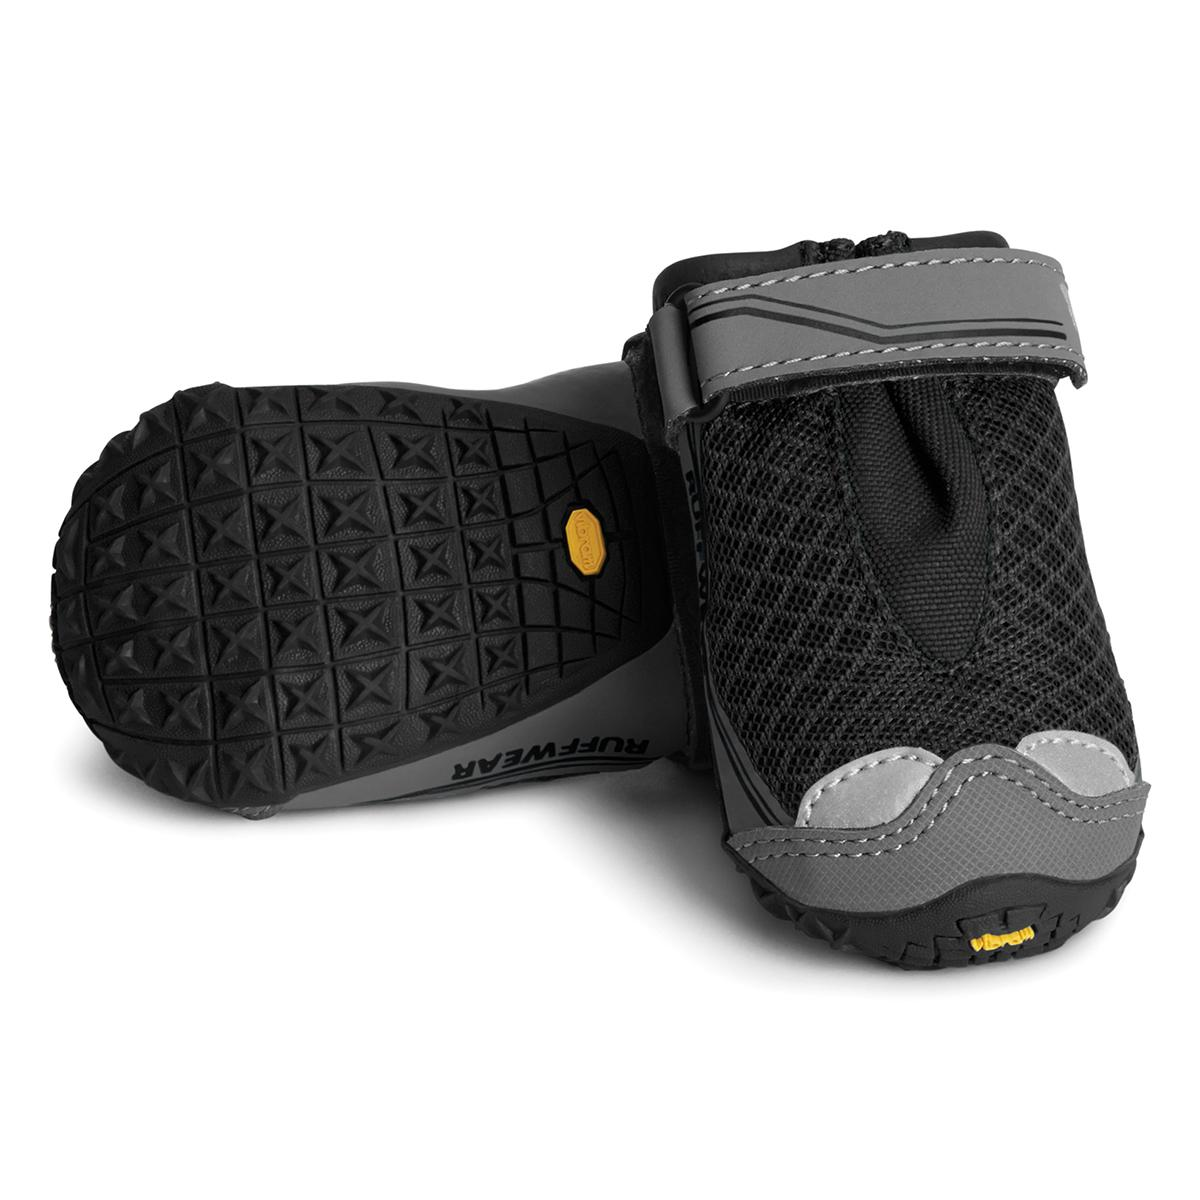 Grip Trex Dog Boots by RuffWear - 2 Pack - Obsidian Black